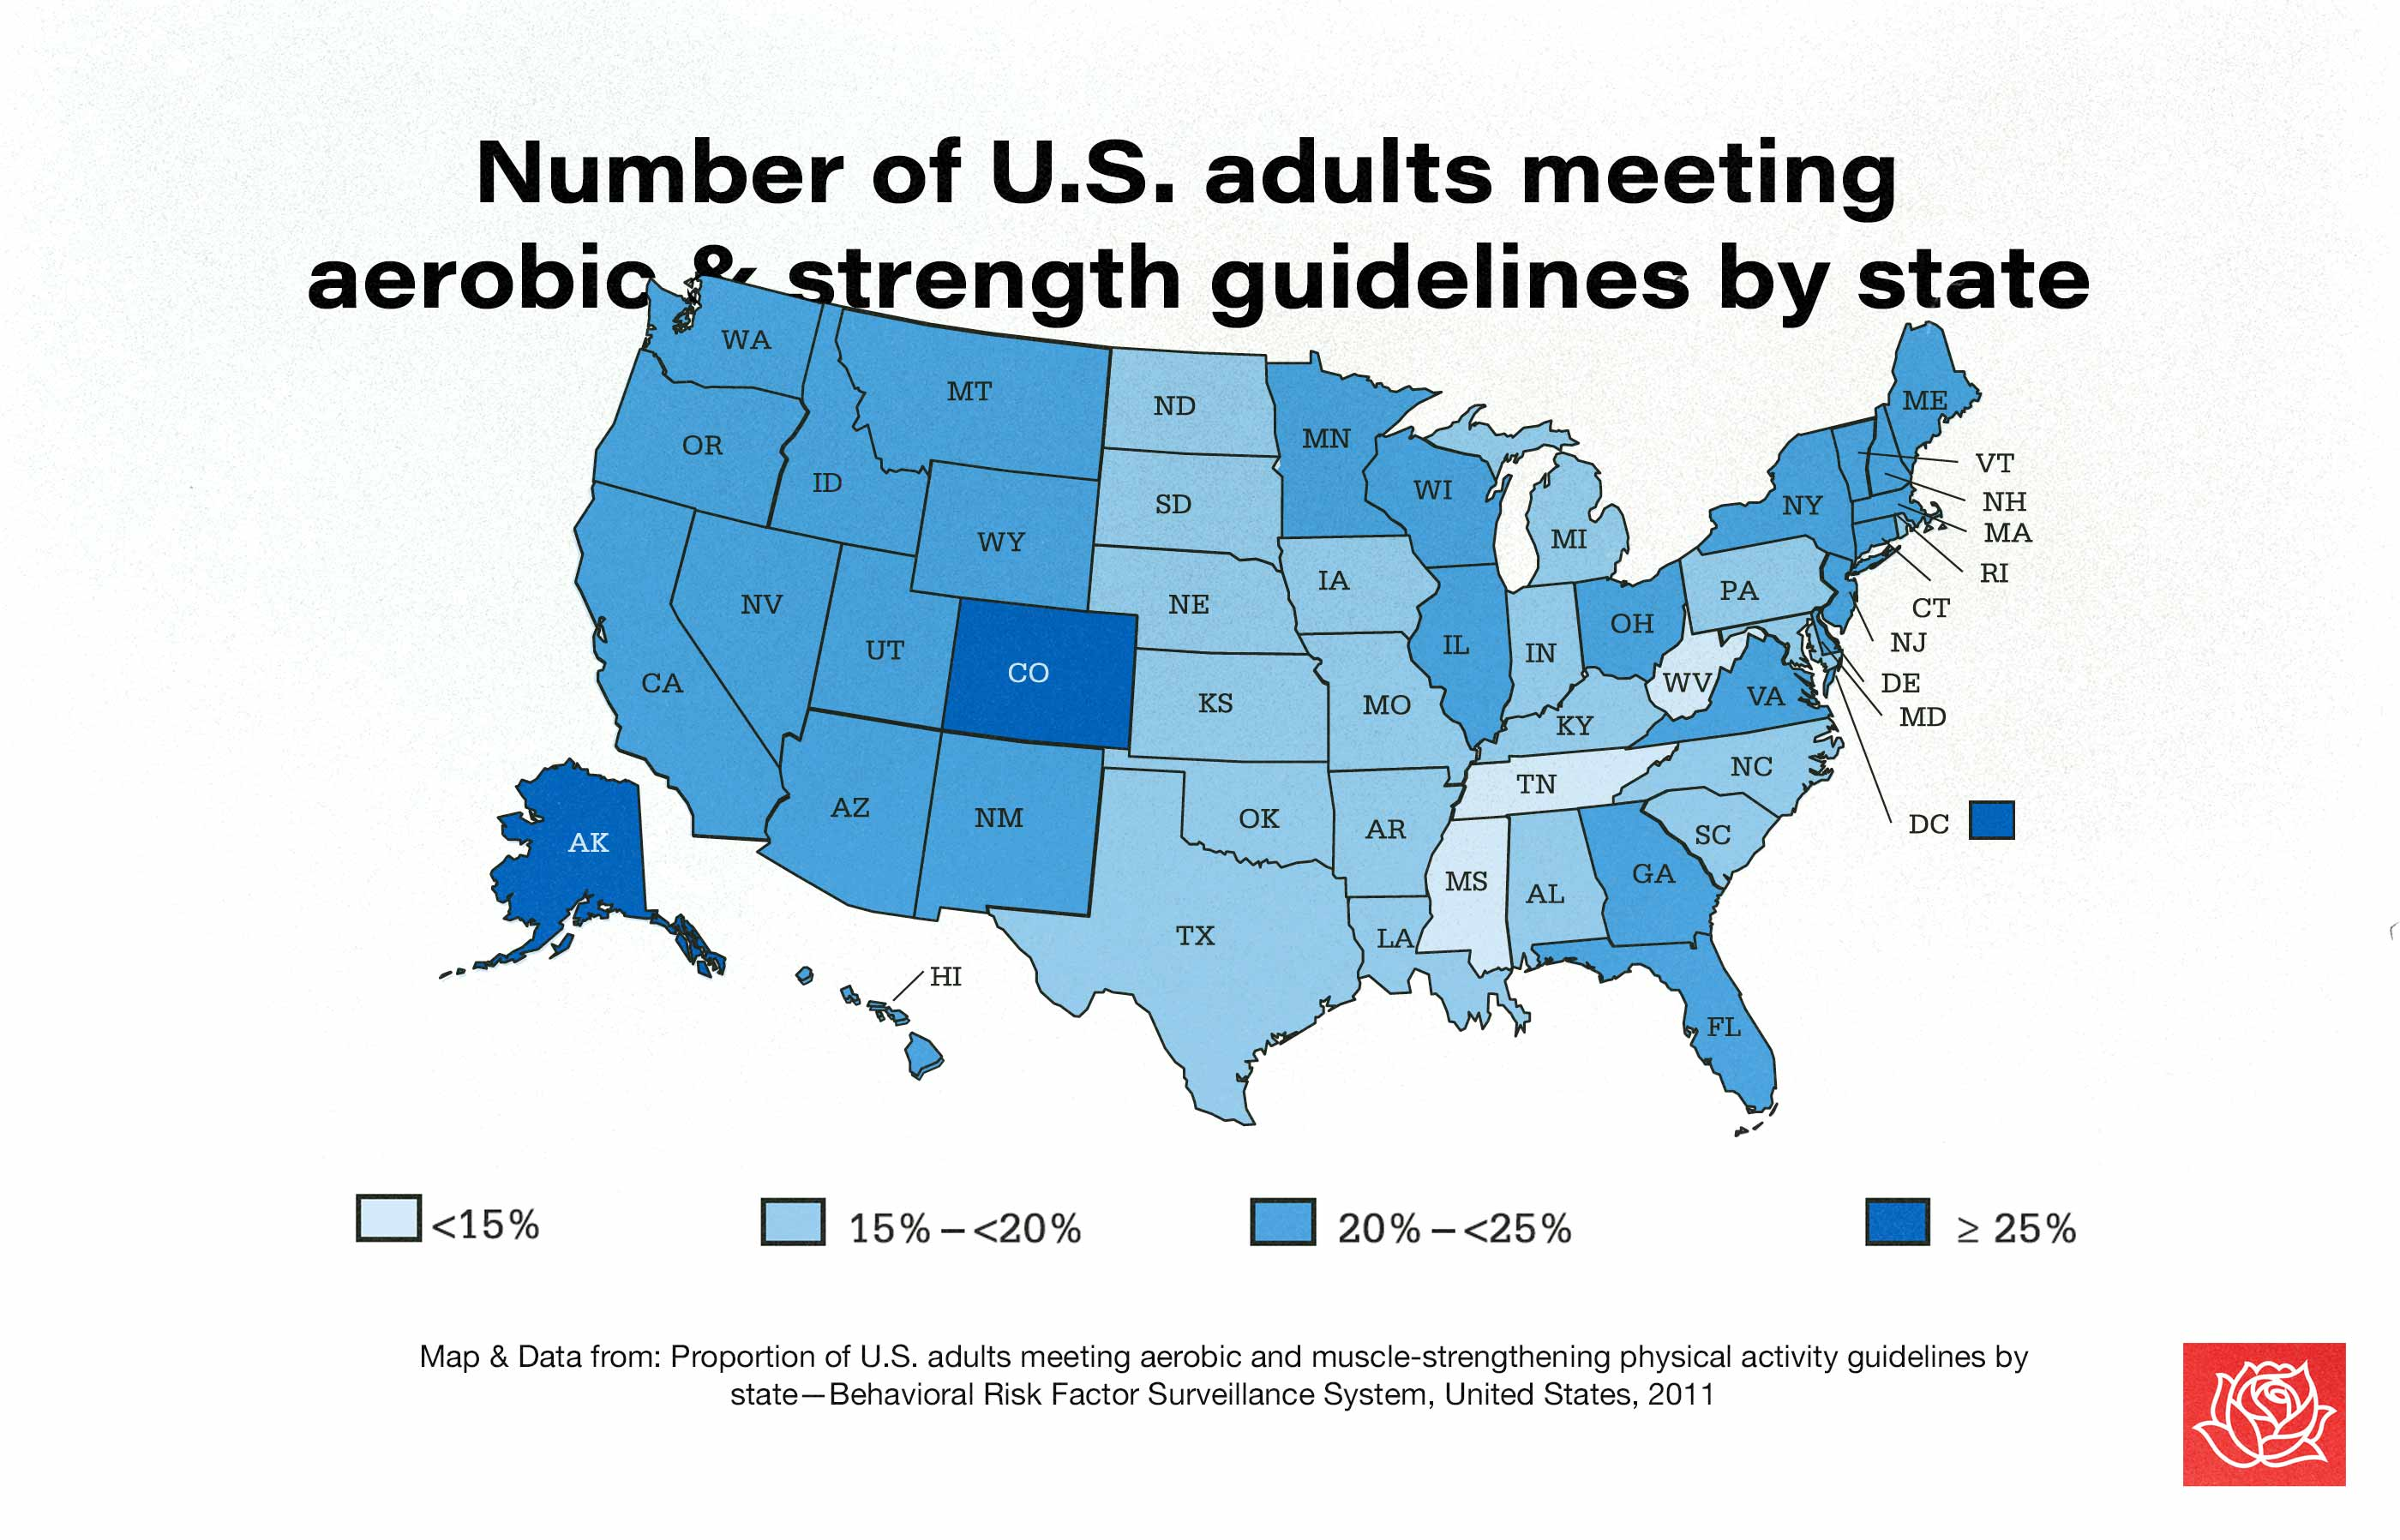 A Map of how many men and women in the US are meeting the aerobic/cardio and strength guidelines. Organized by state.